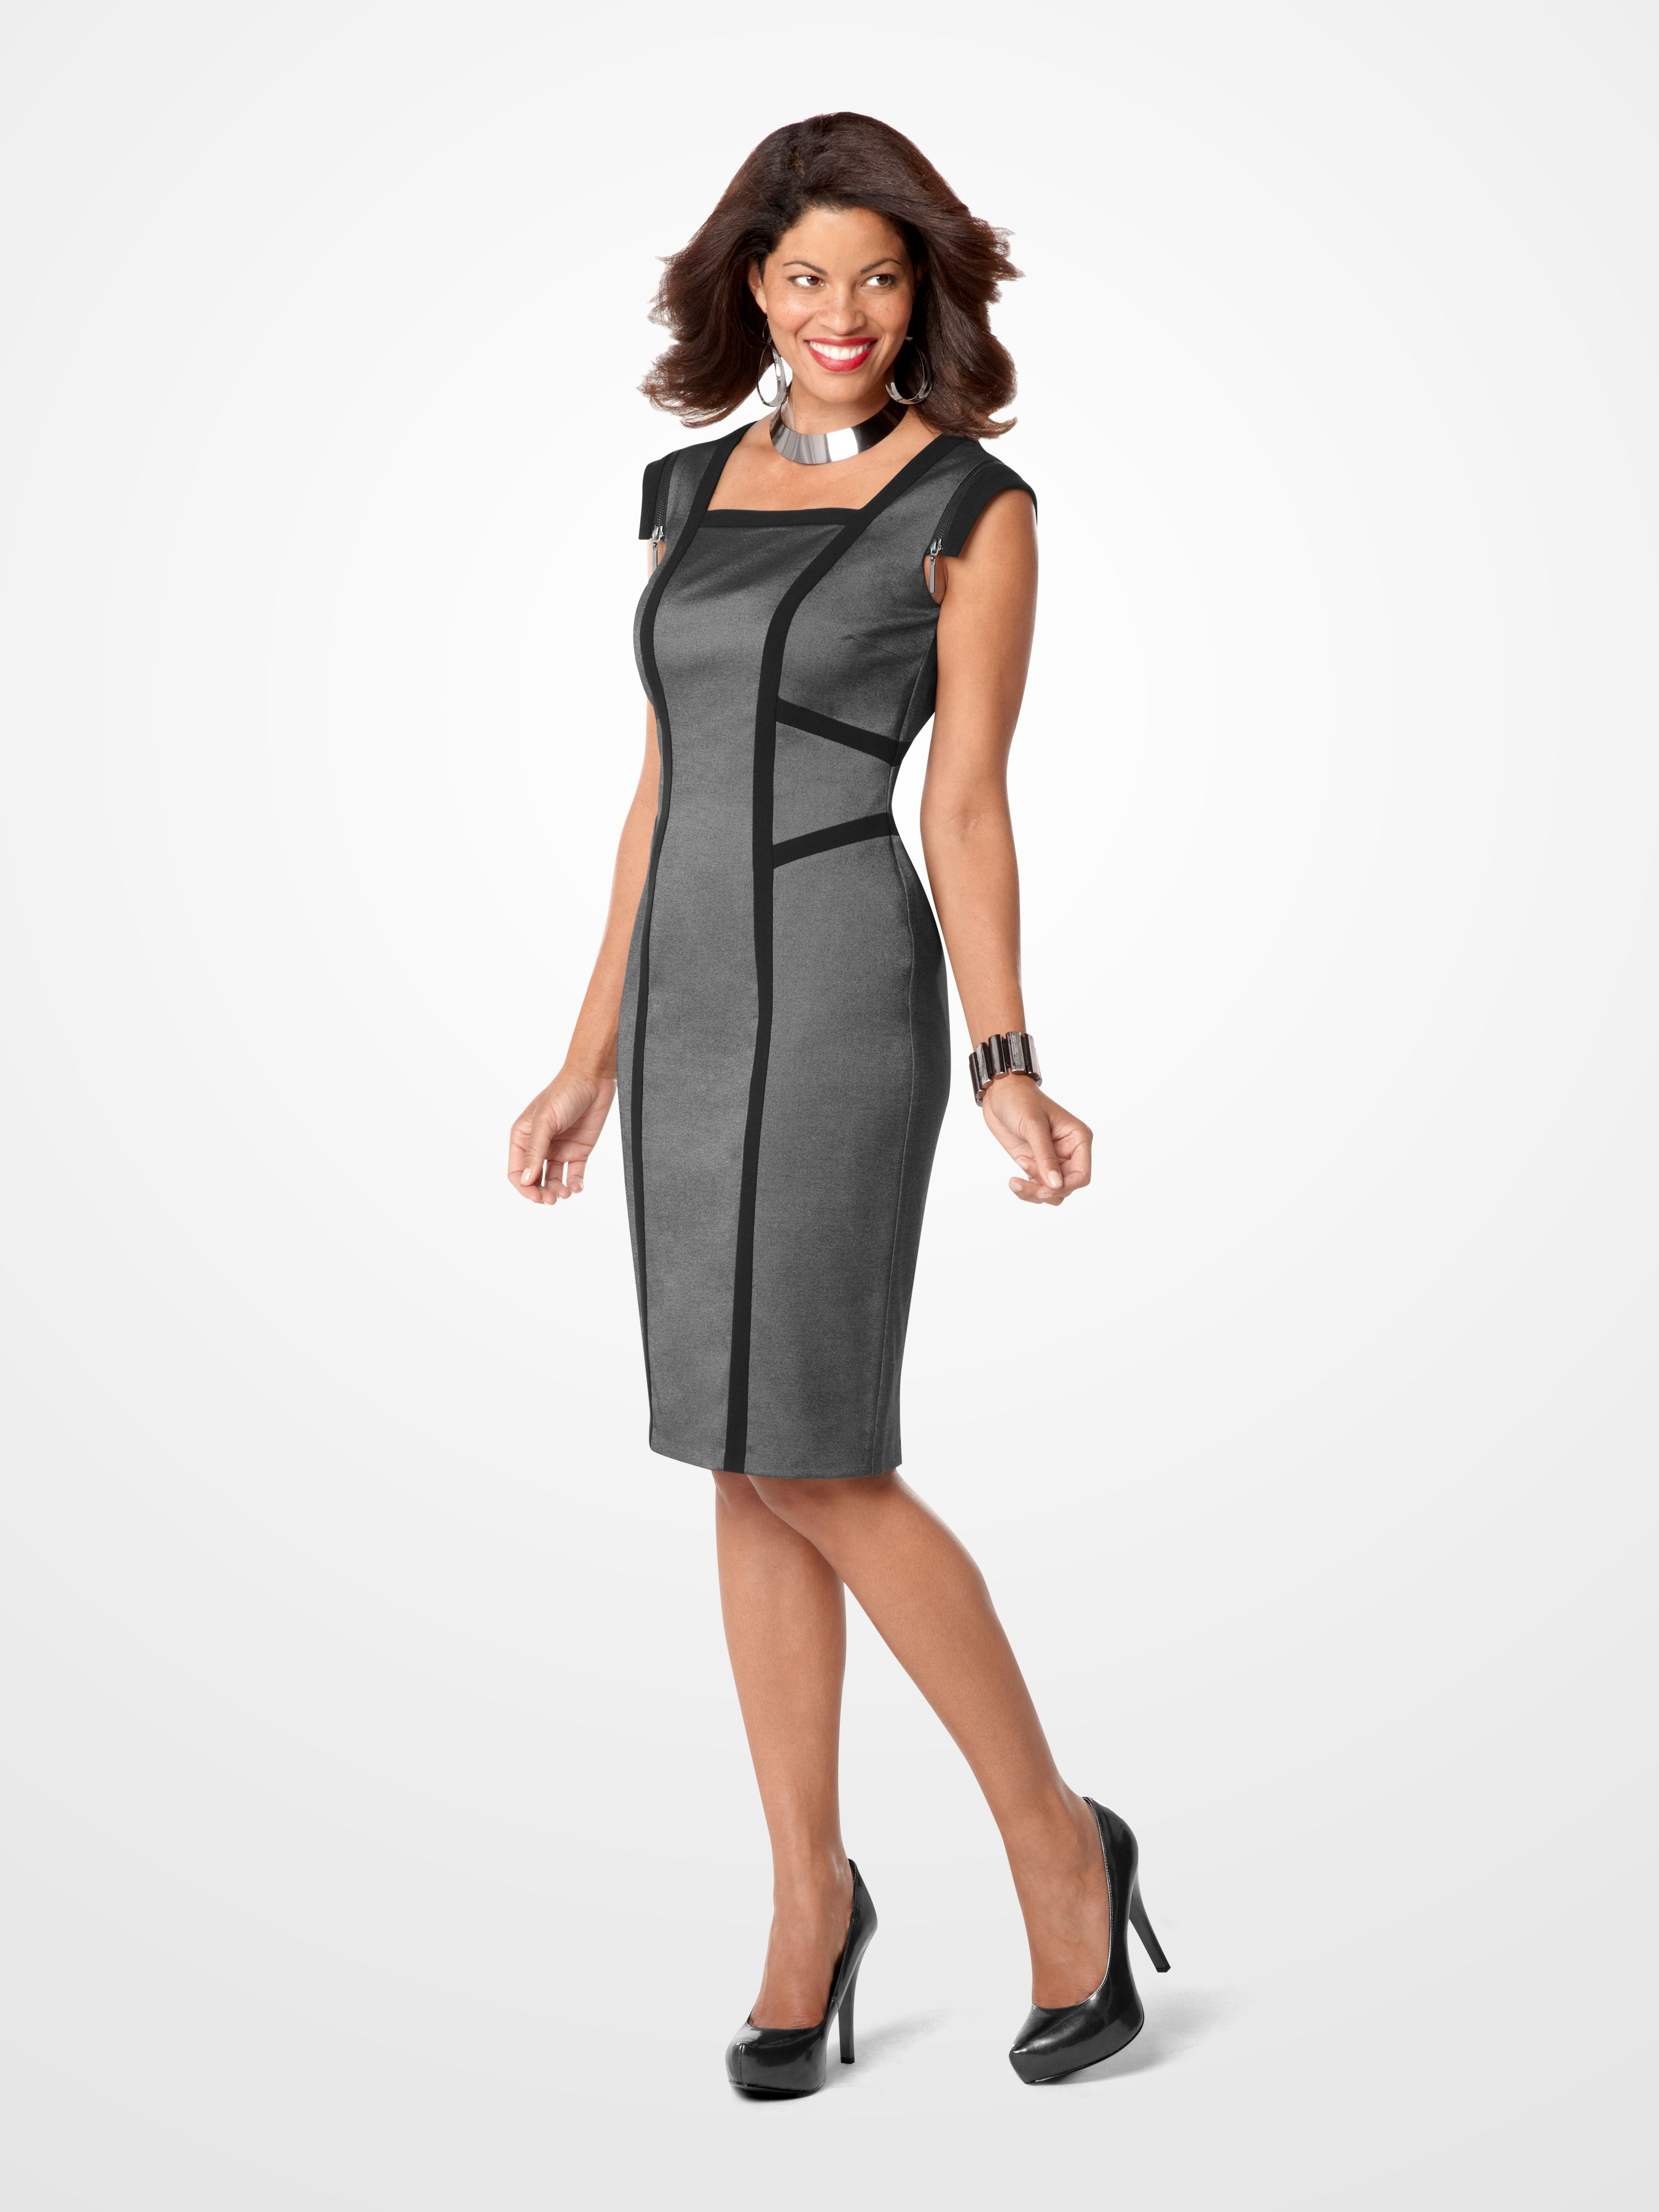 Dress up a Gray and Black Colorblock Zipper Dress with a Celebrity Edition Hematite Cuff Necklace SteveHarvey Fashion